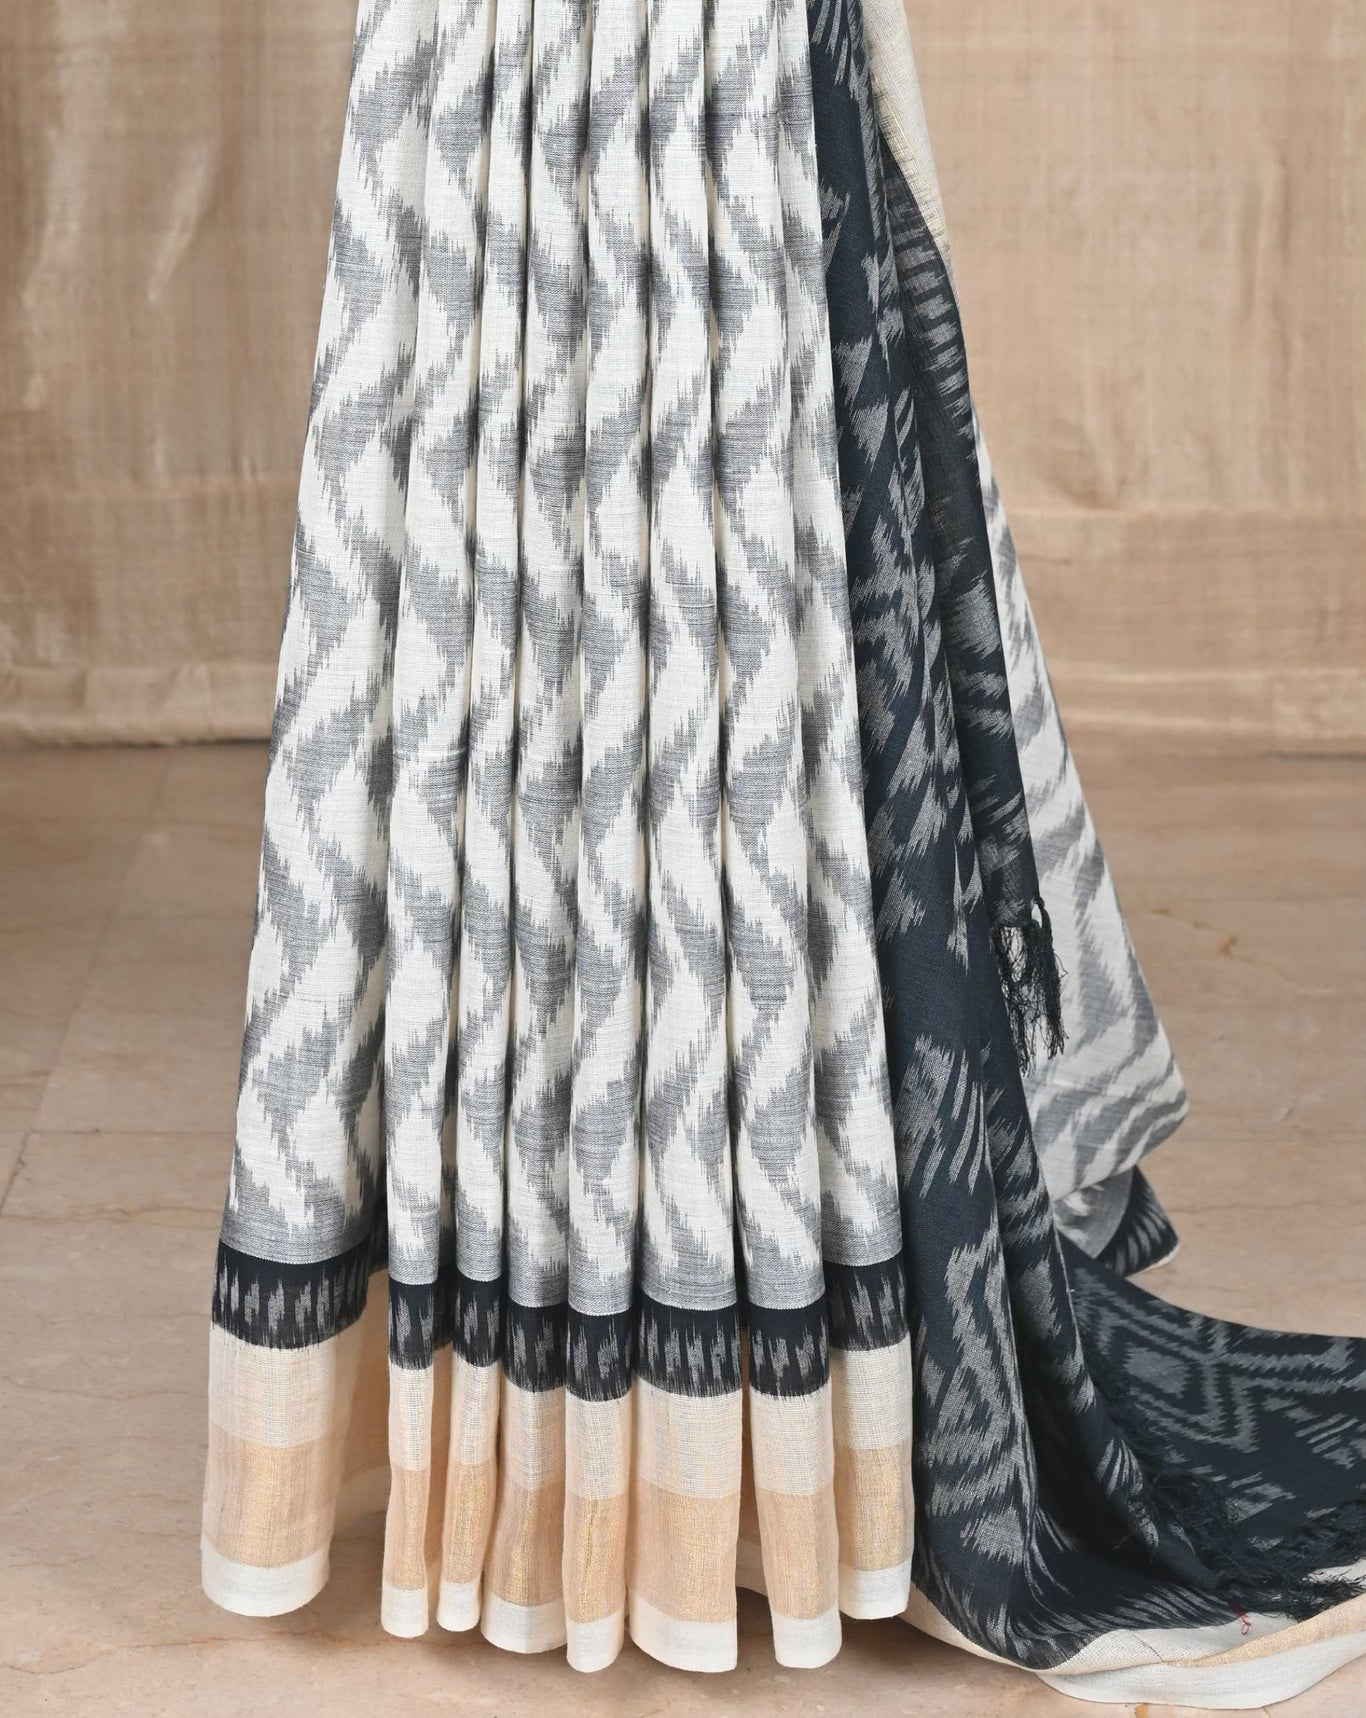 Ereena White with Black Chevron Ikat Eri Silk Saree